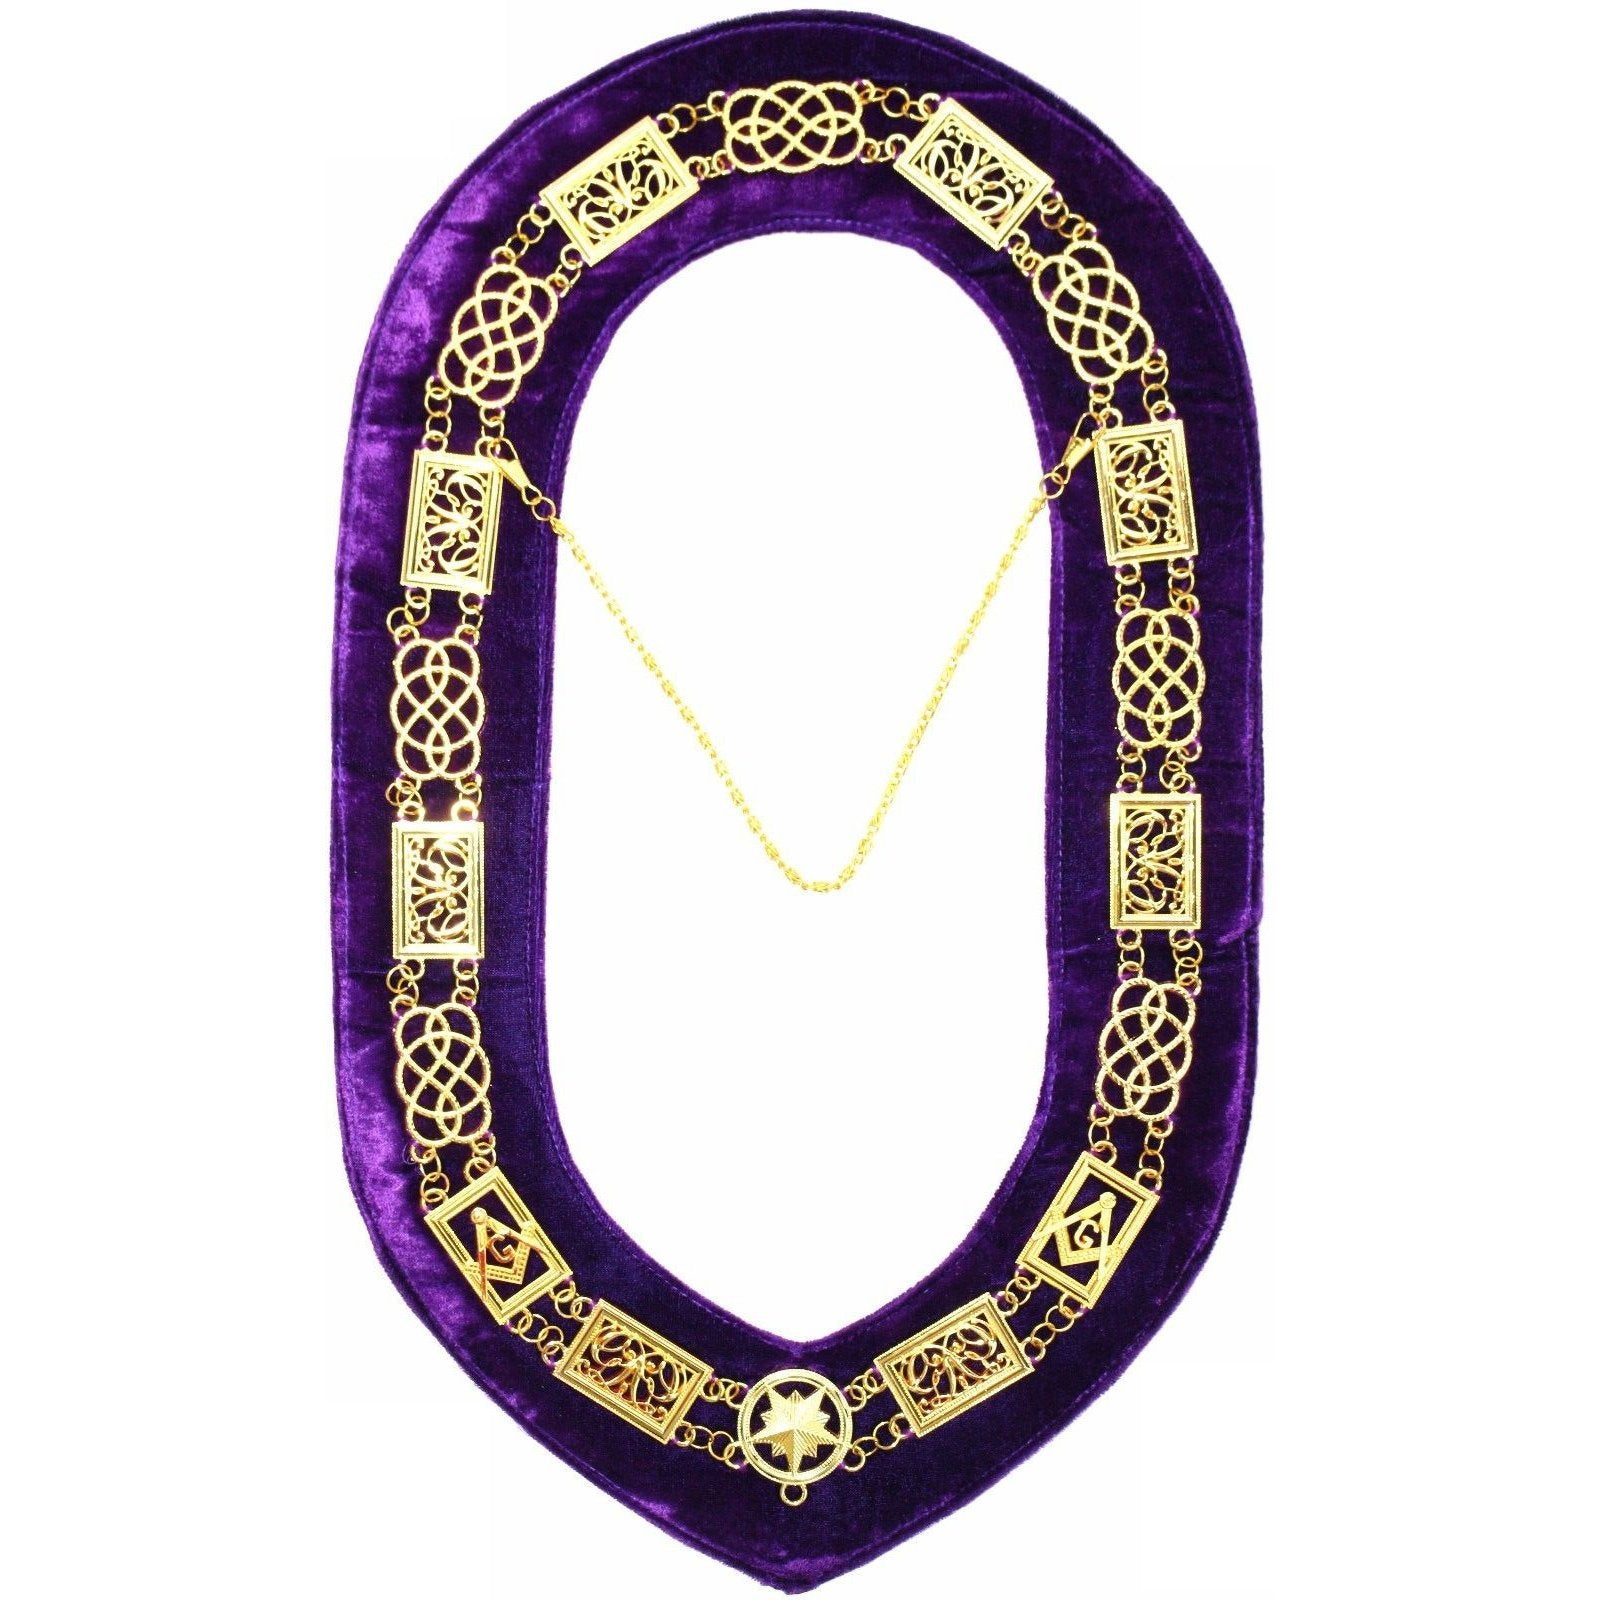 Grand Lodge - Chain Collar - Gold/Silver on Purple + Free Case - Bricks Masons